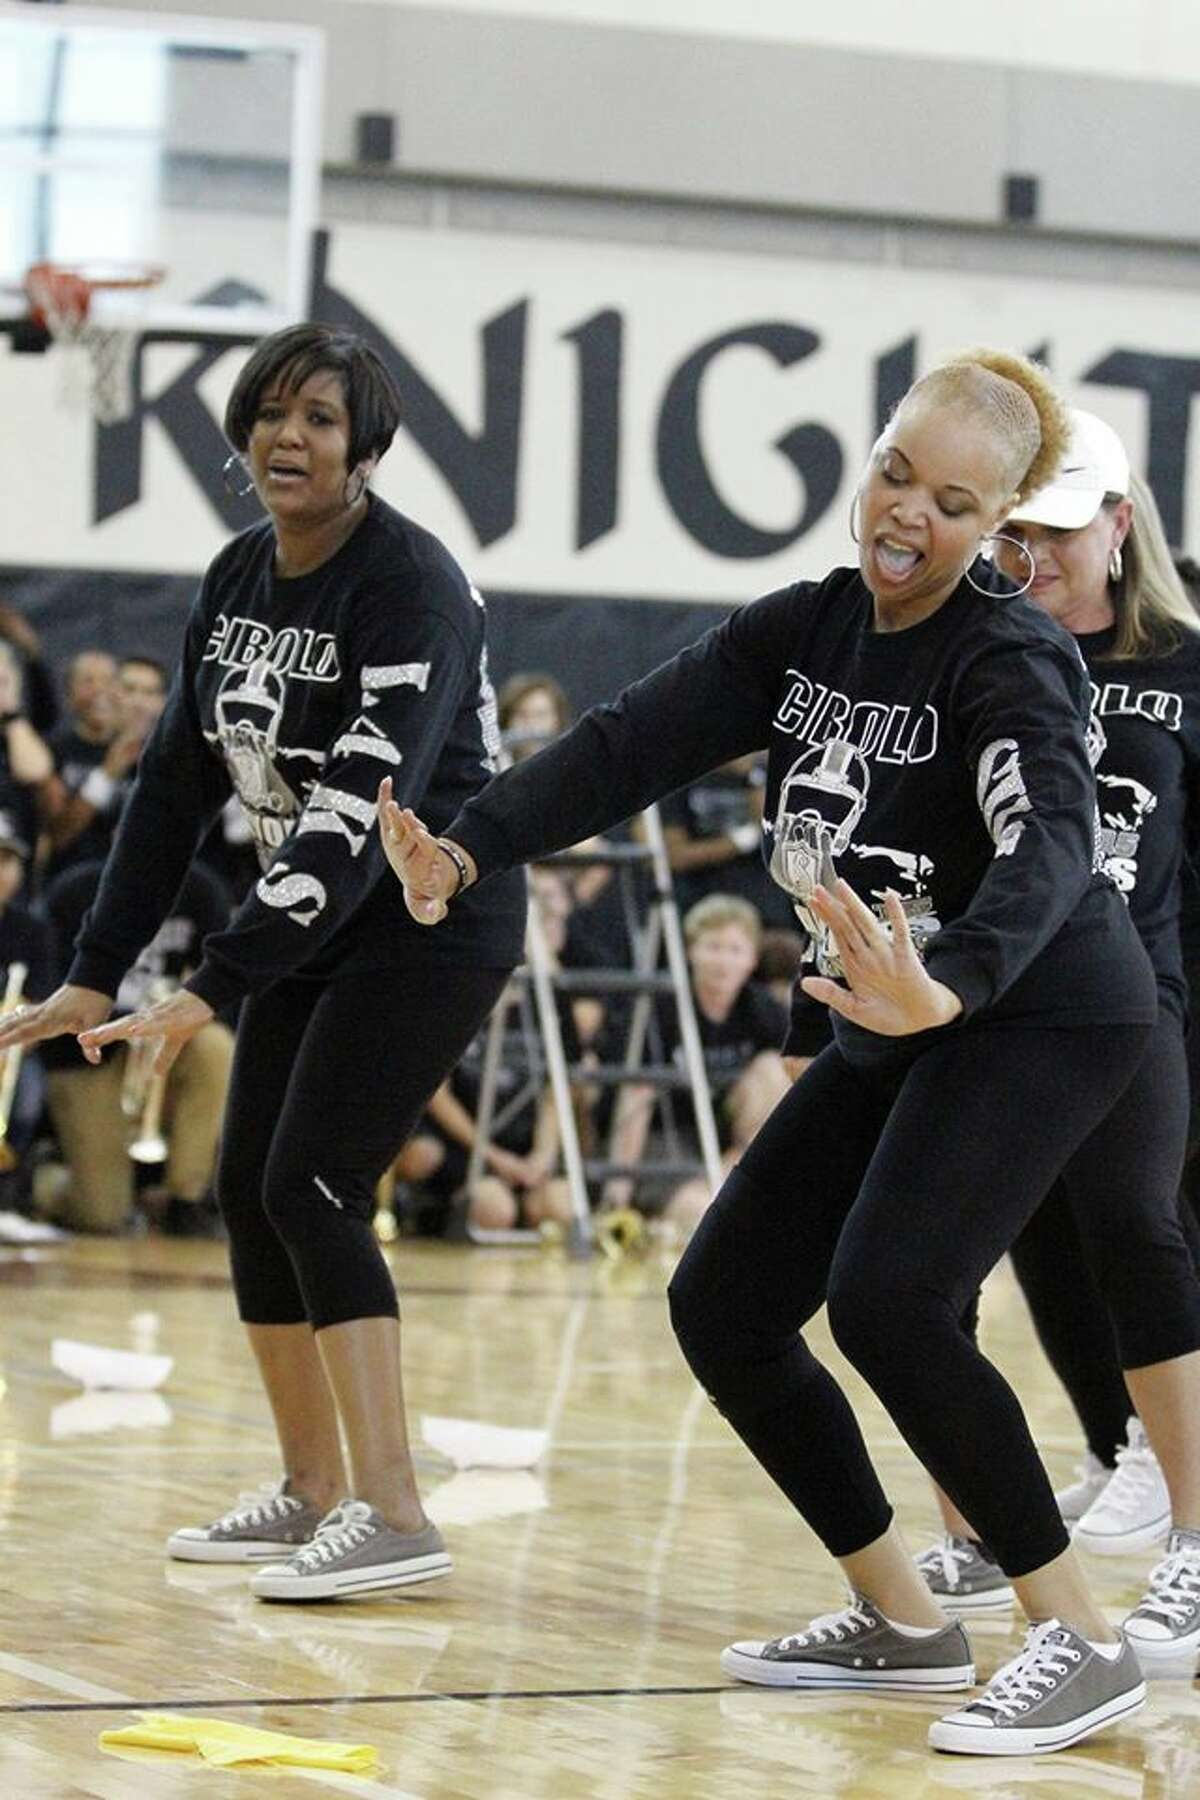 The dance crew has been invited to perform on local TV shows and uploaded the video to the Ellen Show's EllenTube to put it on her radar.